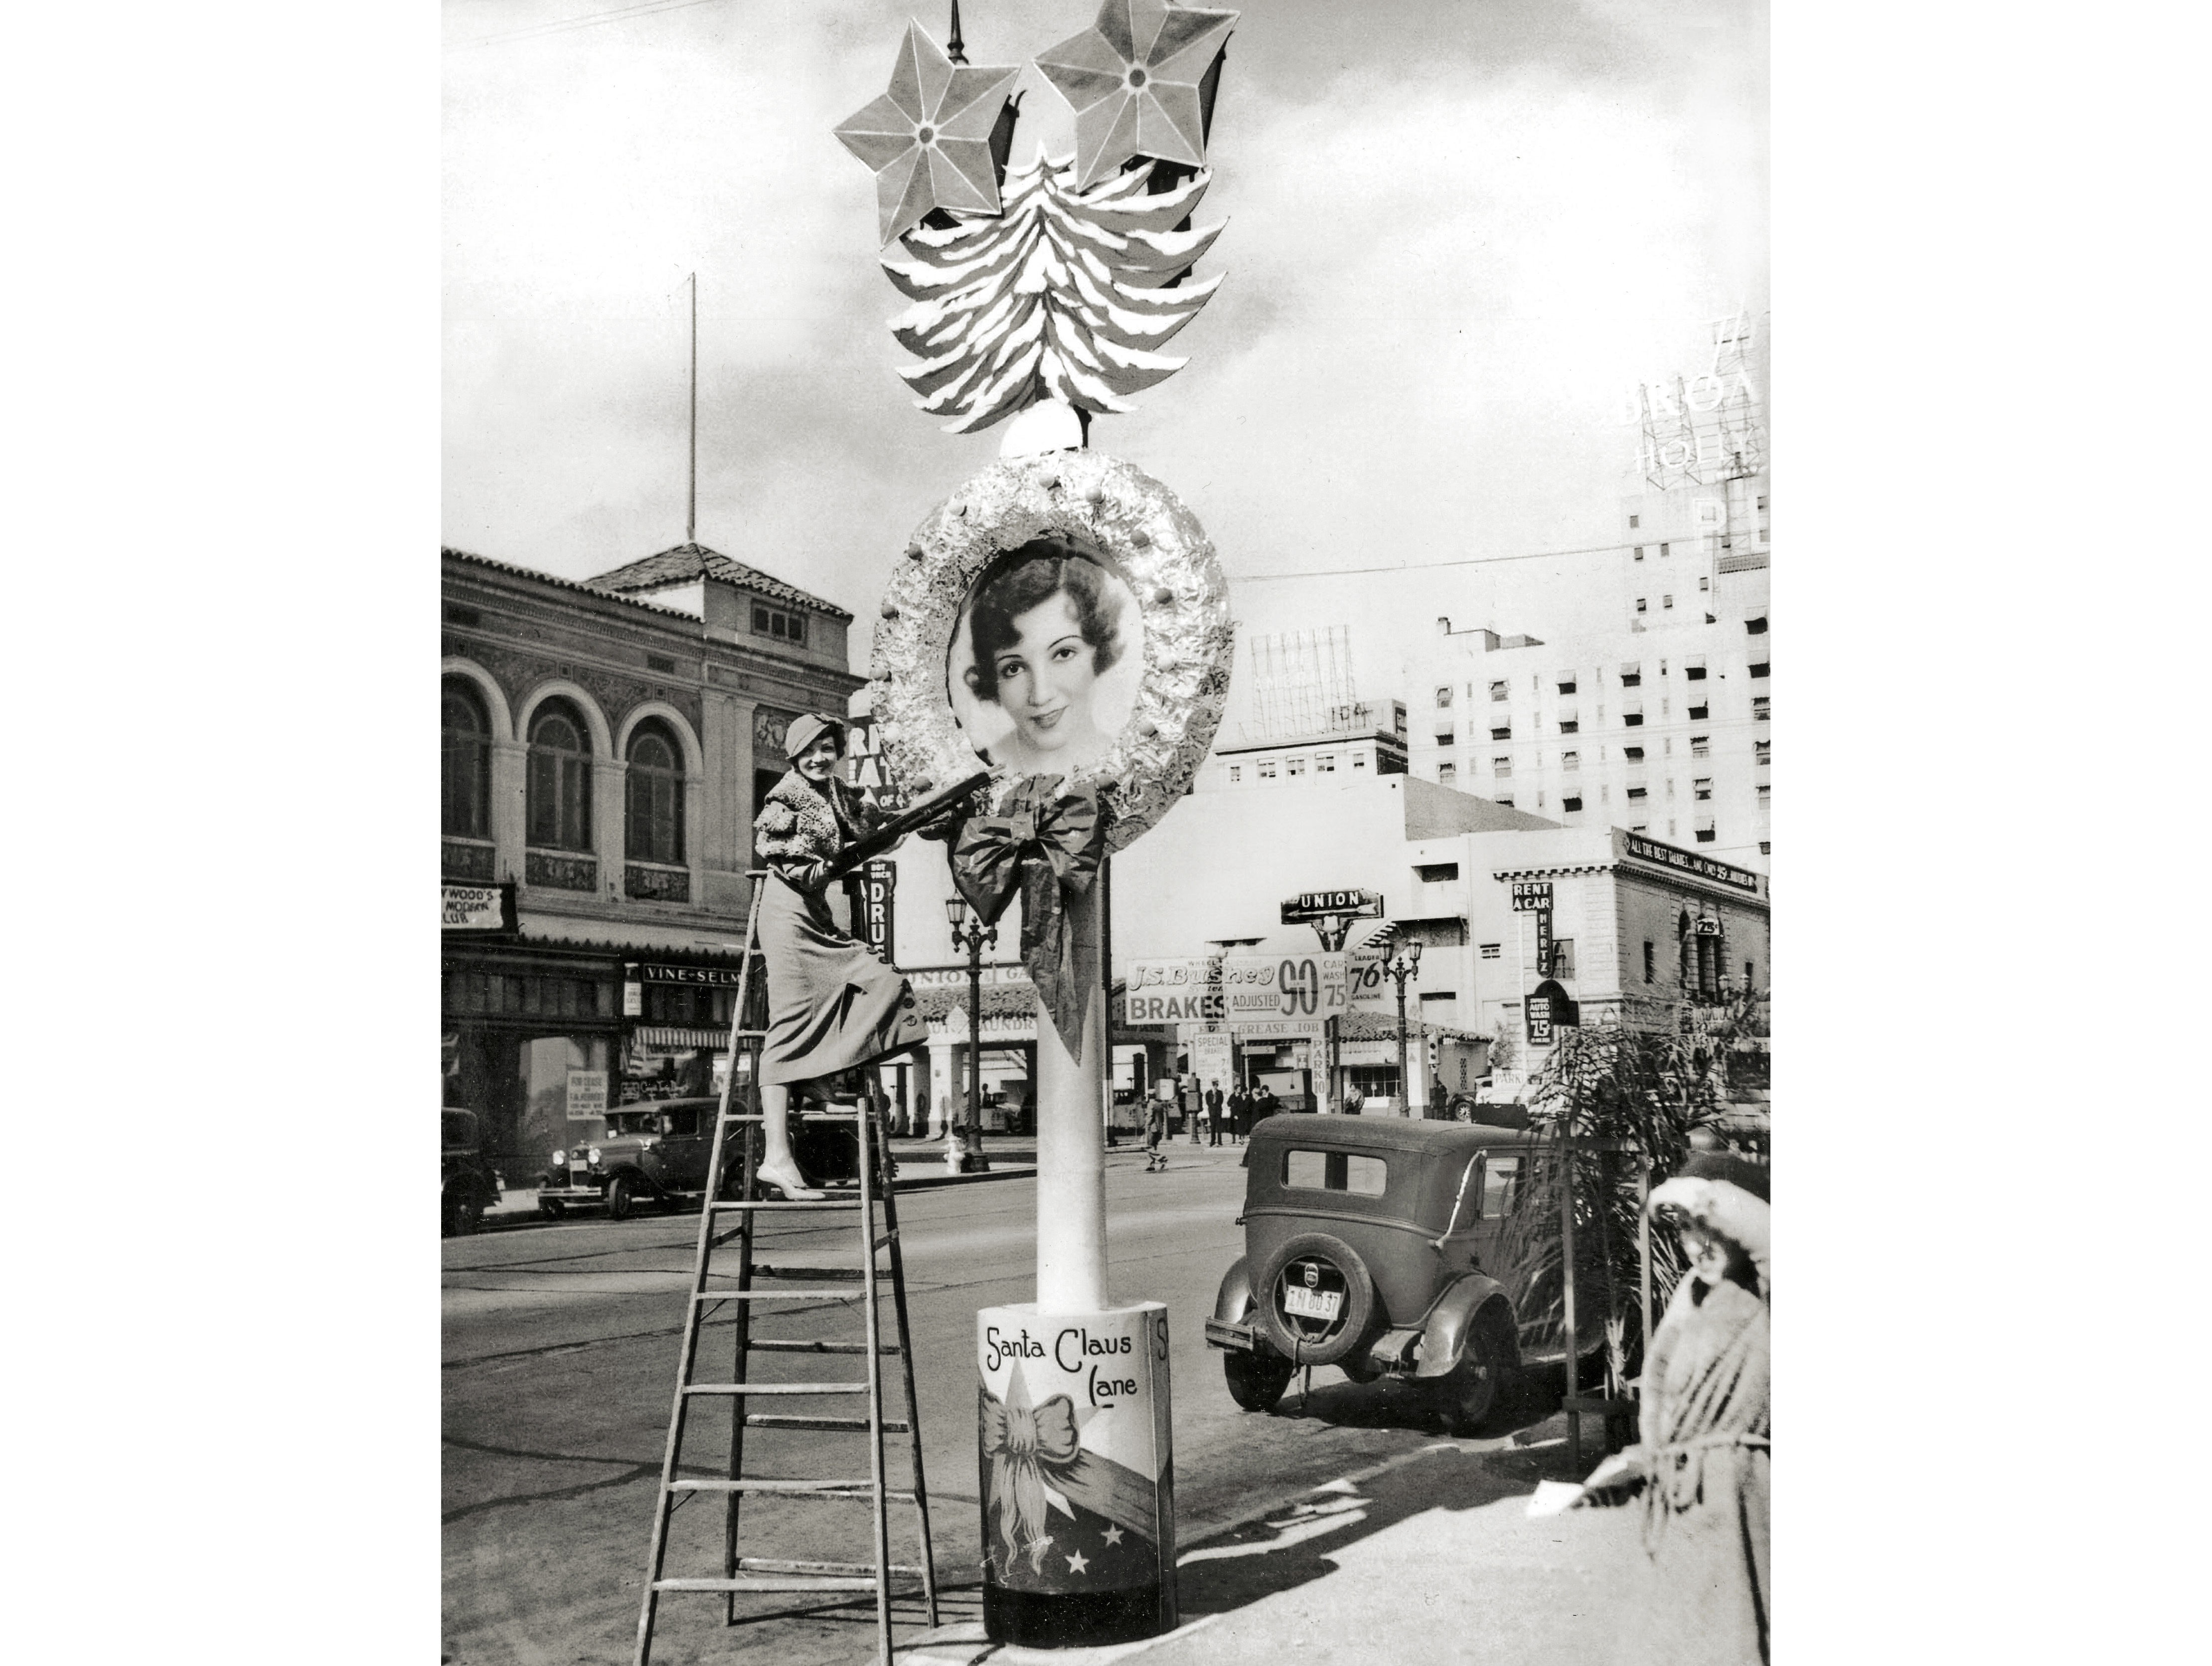 Claudette Colbert admires her oversized portrait lining Vine Street in Hollywood for the 1932 Santa Claus Lane shopping season.